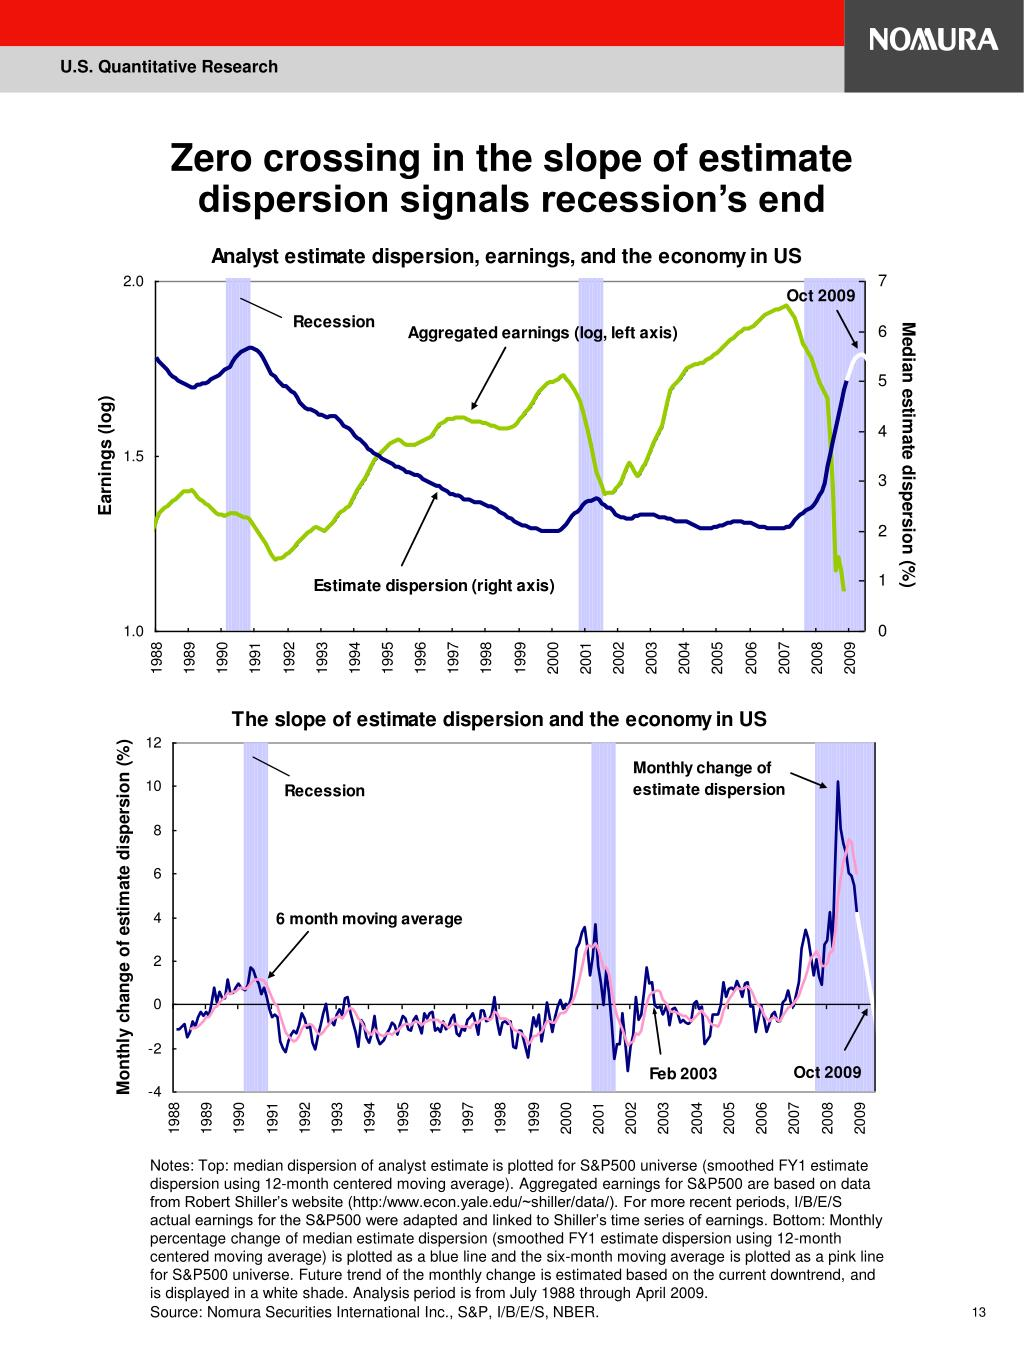 Zero crossing in the slope of estimate dispersion signals recession's end